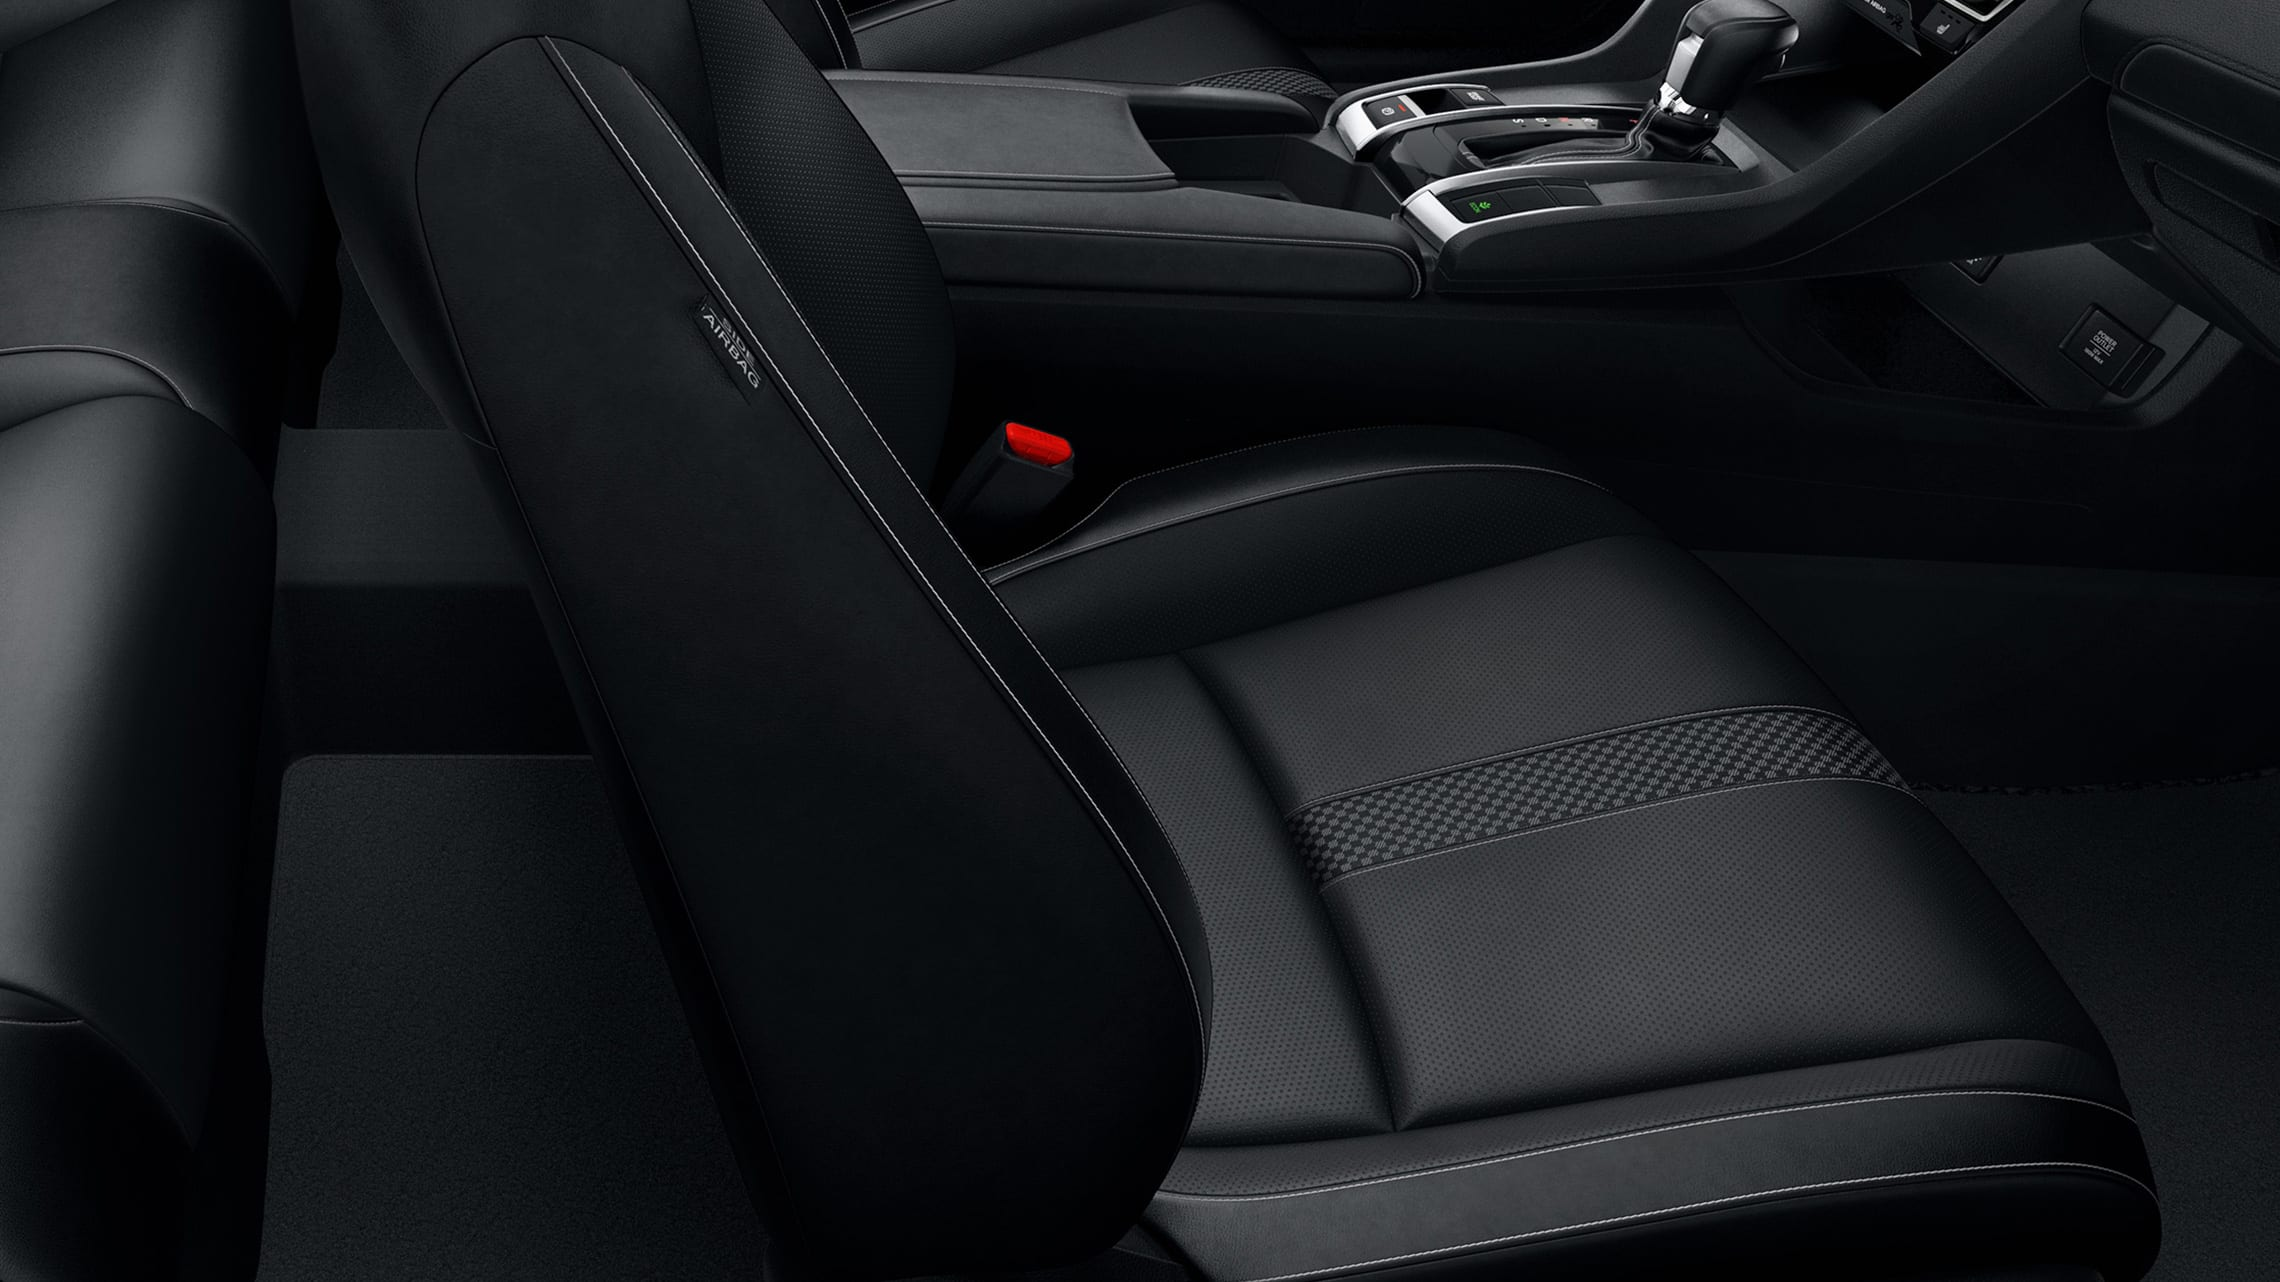 Leather-trimmed seat detail in the 2020 Honda Civic Touring Coupe with Black Leather.